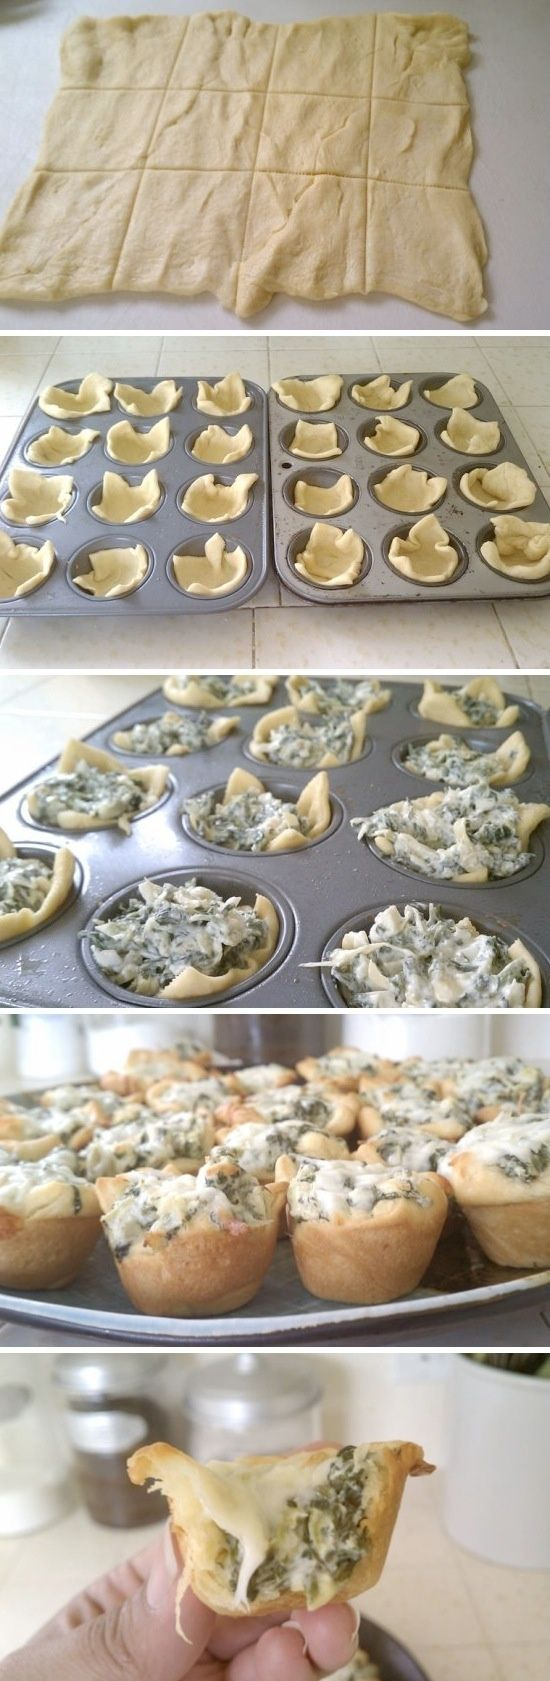 Spinach Artichoke Bites - these melt-in-your mouth appetizers are perfect for any party and theyre so easy to | http://ilovephotosoffood.blogspot.com